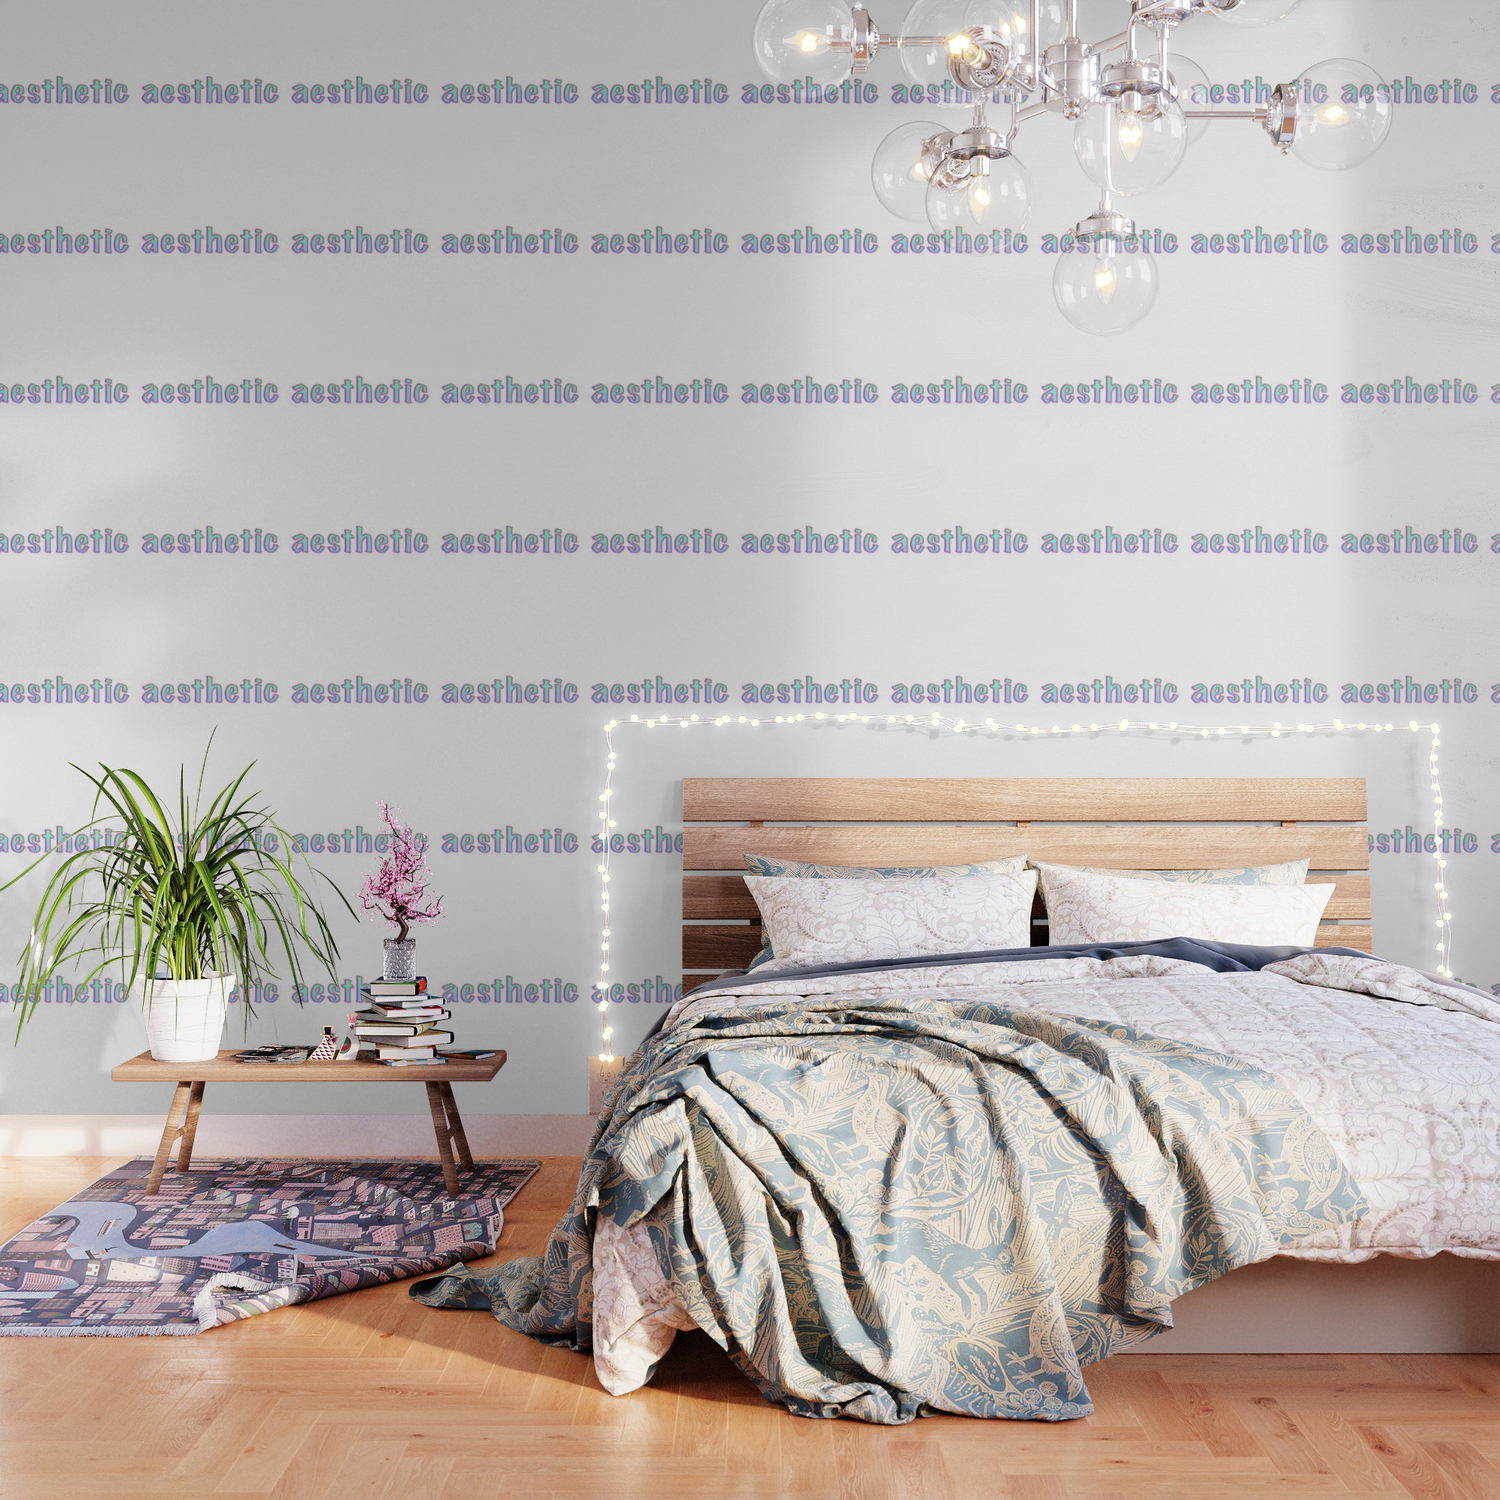 aesthetic text vintage letters grunge wallpaper